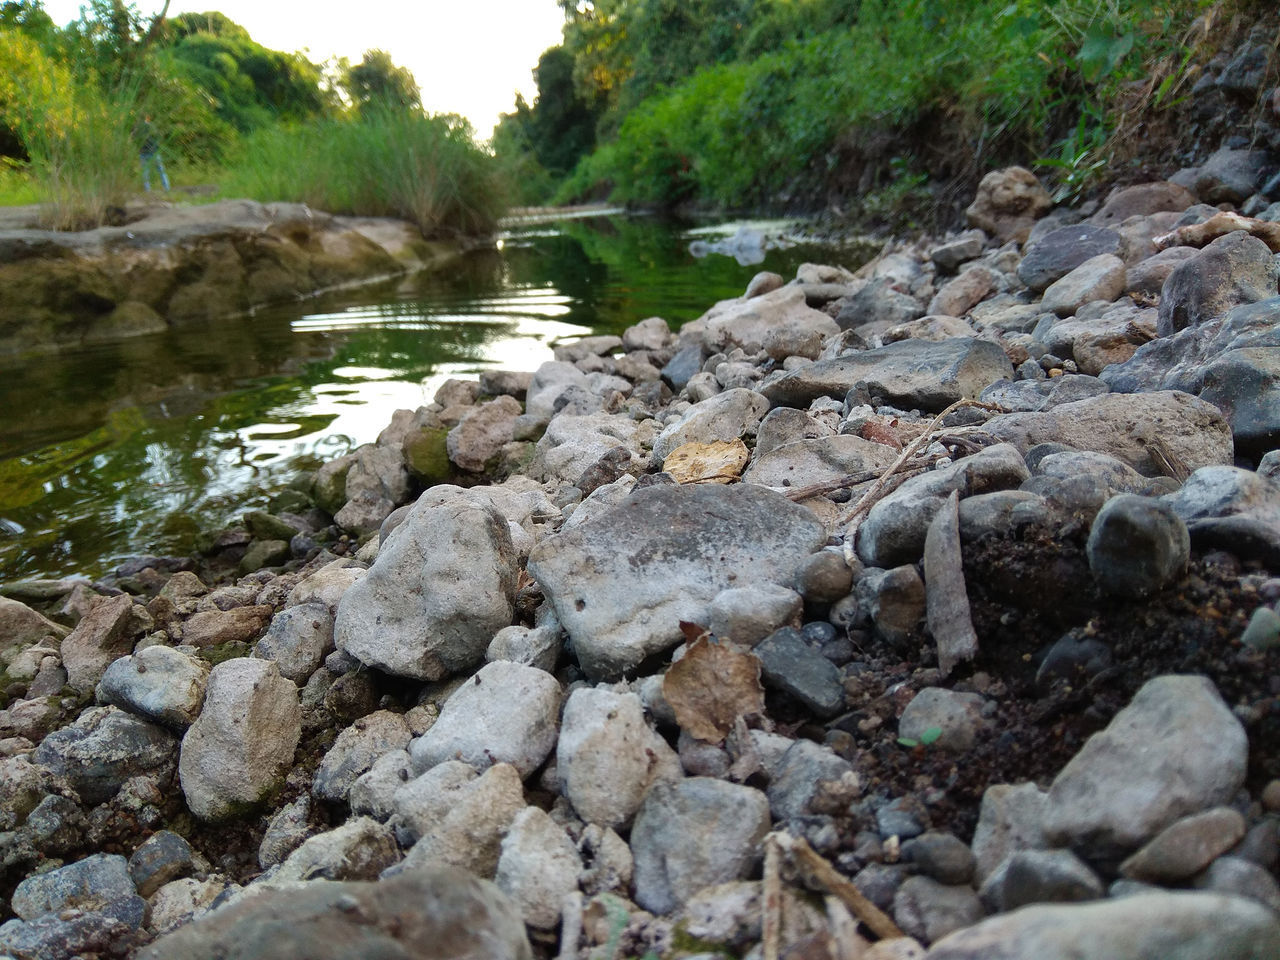 SURFACE LEVEL OF STREAM